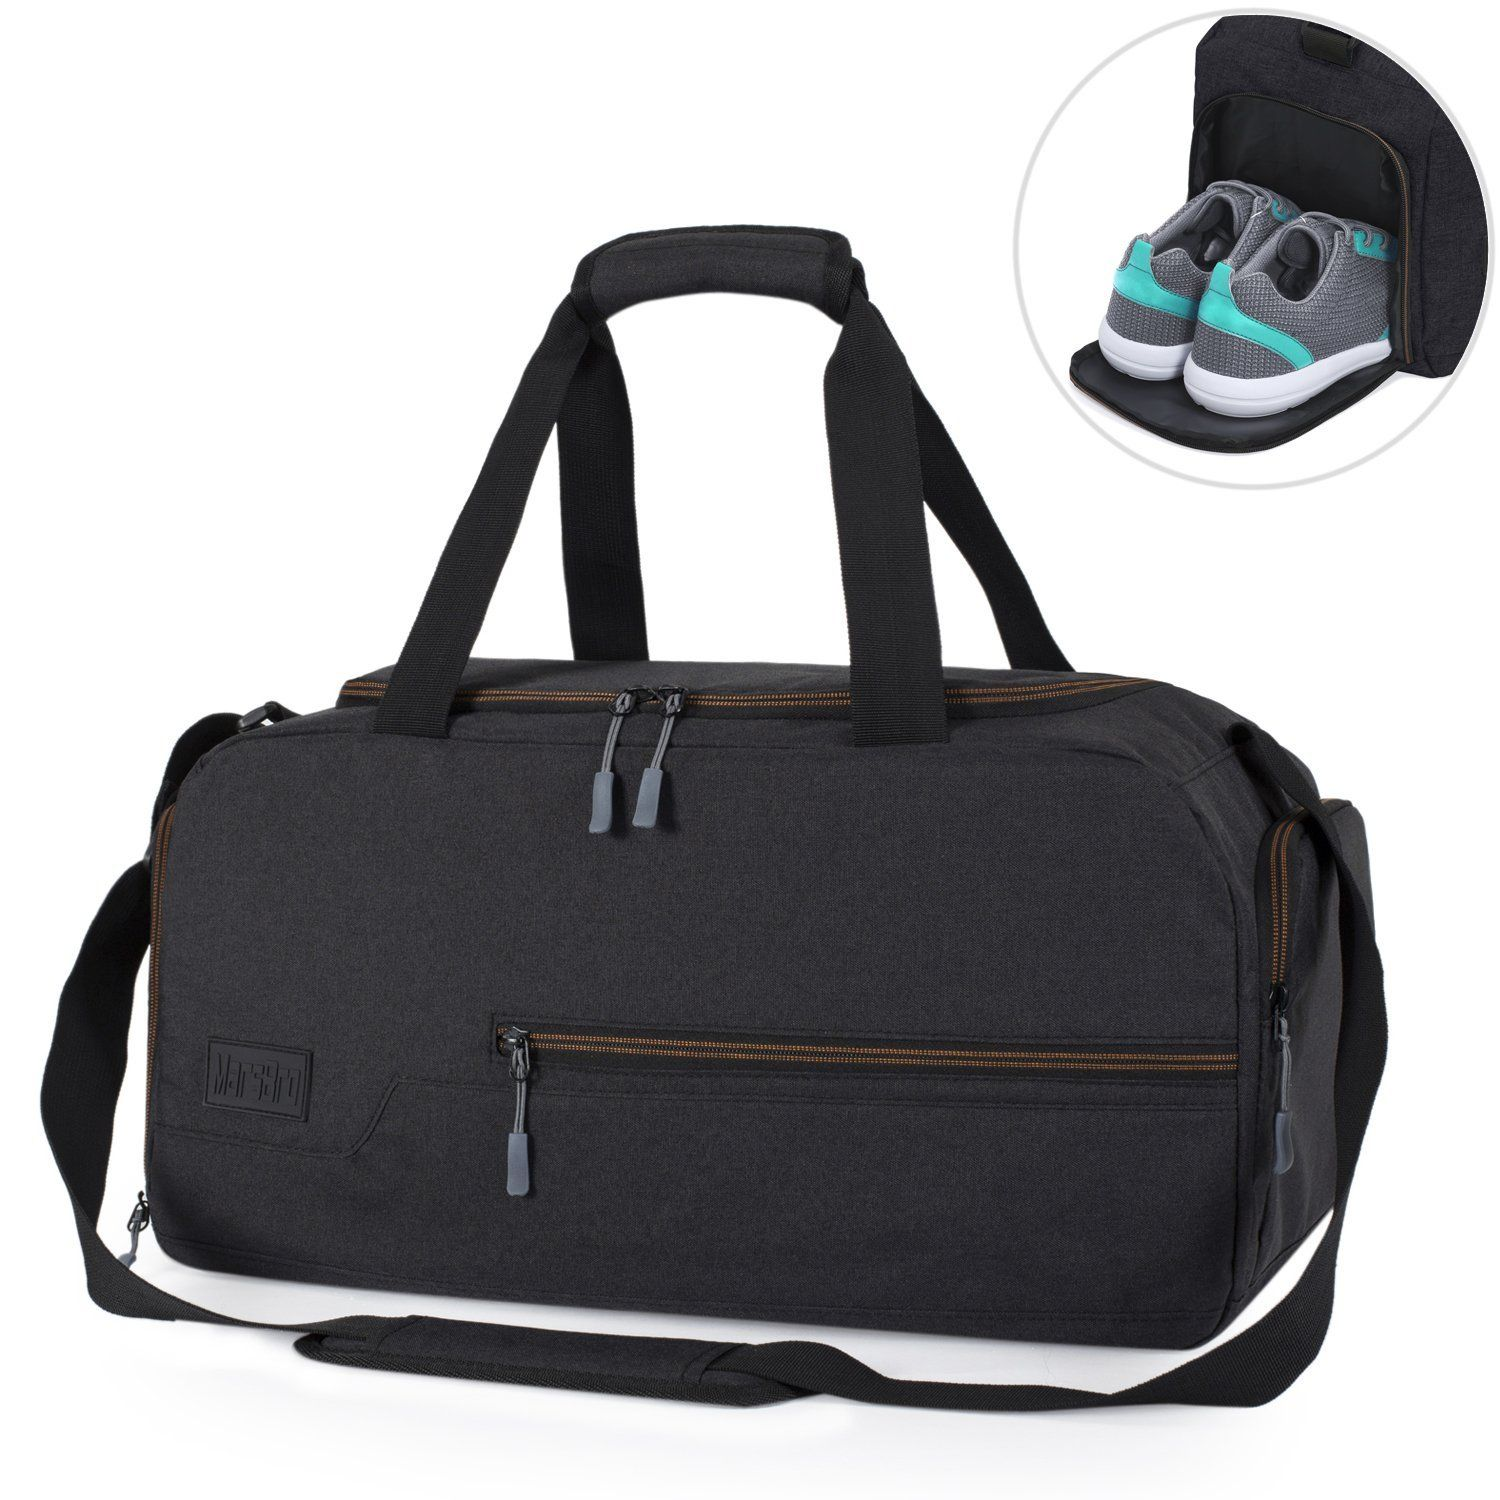 2c4219fd4d Gym Bag With Shoe Compartment Uk